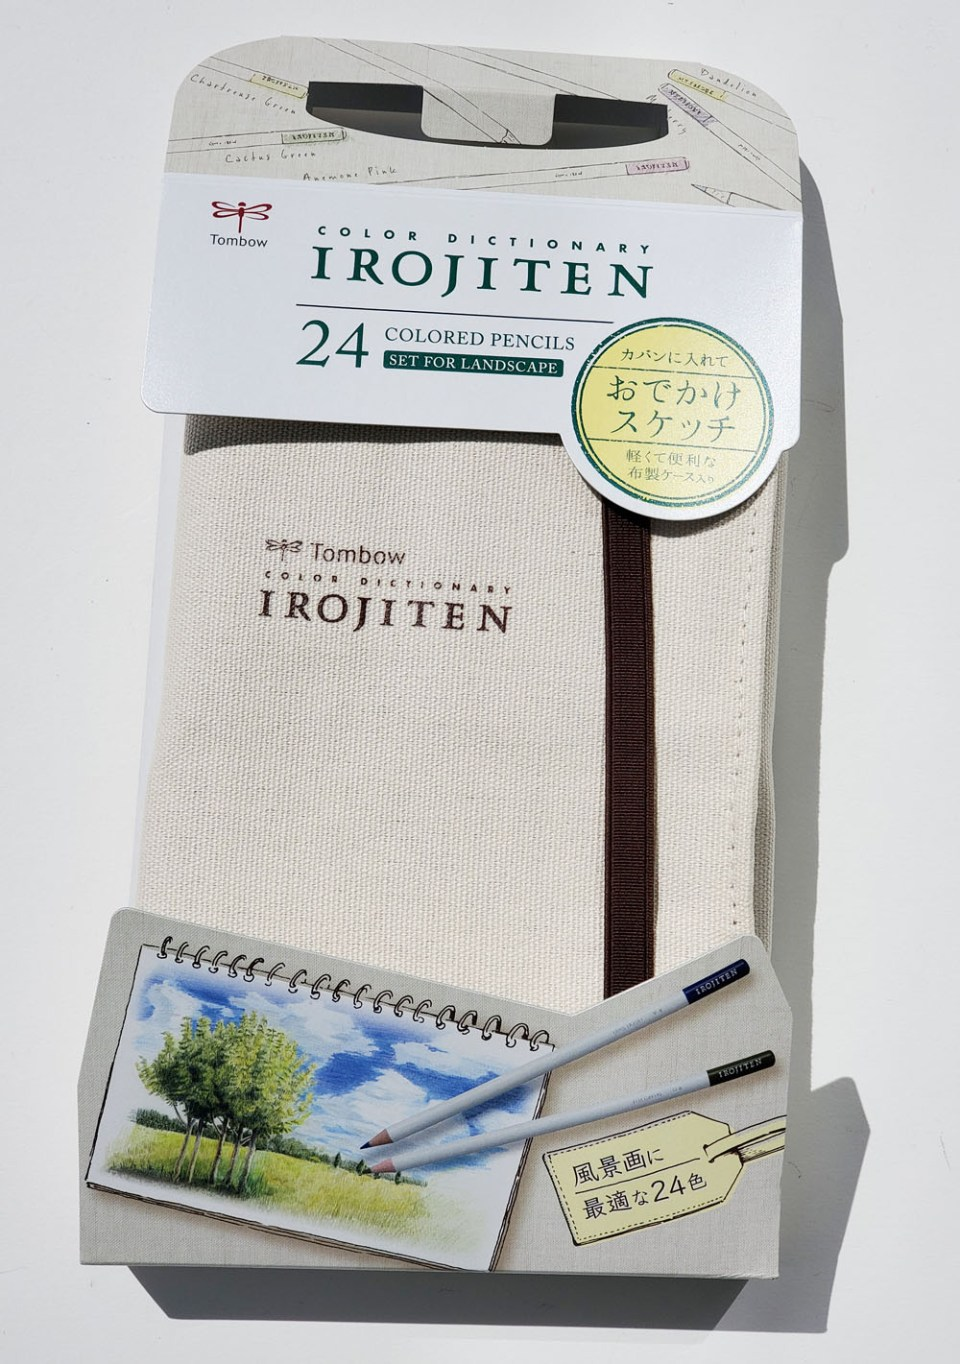 Irojiten case and packaging